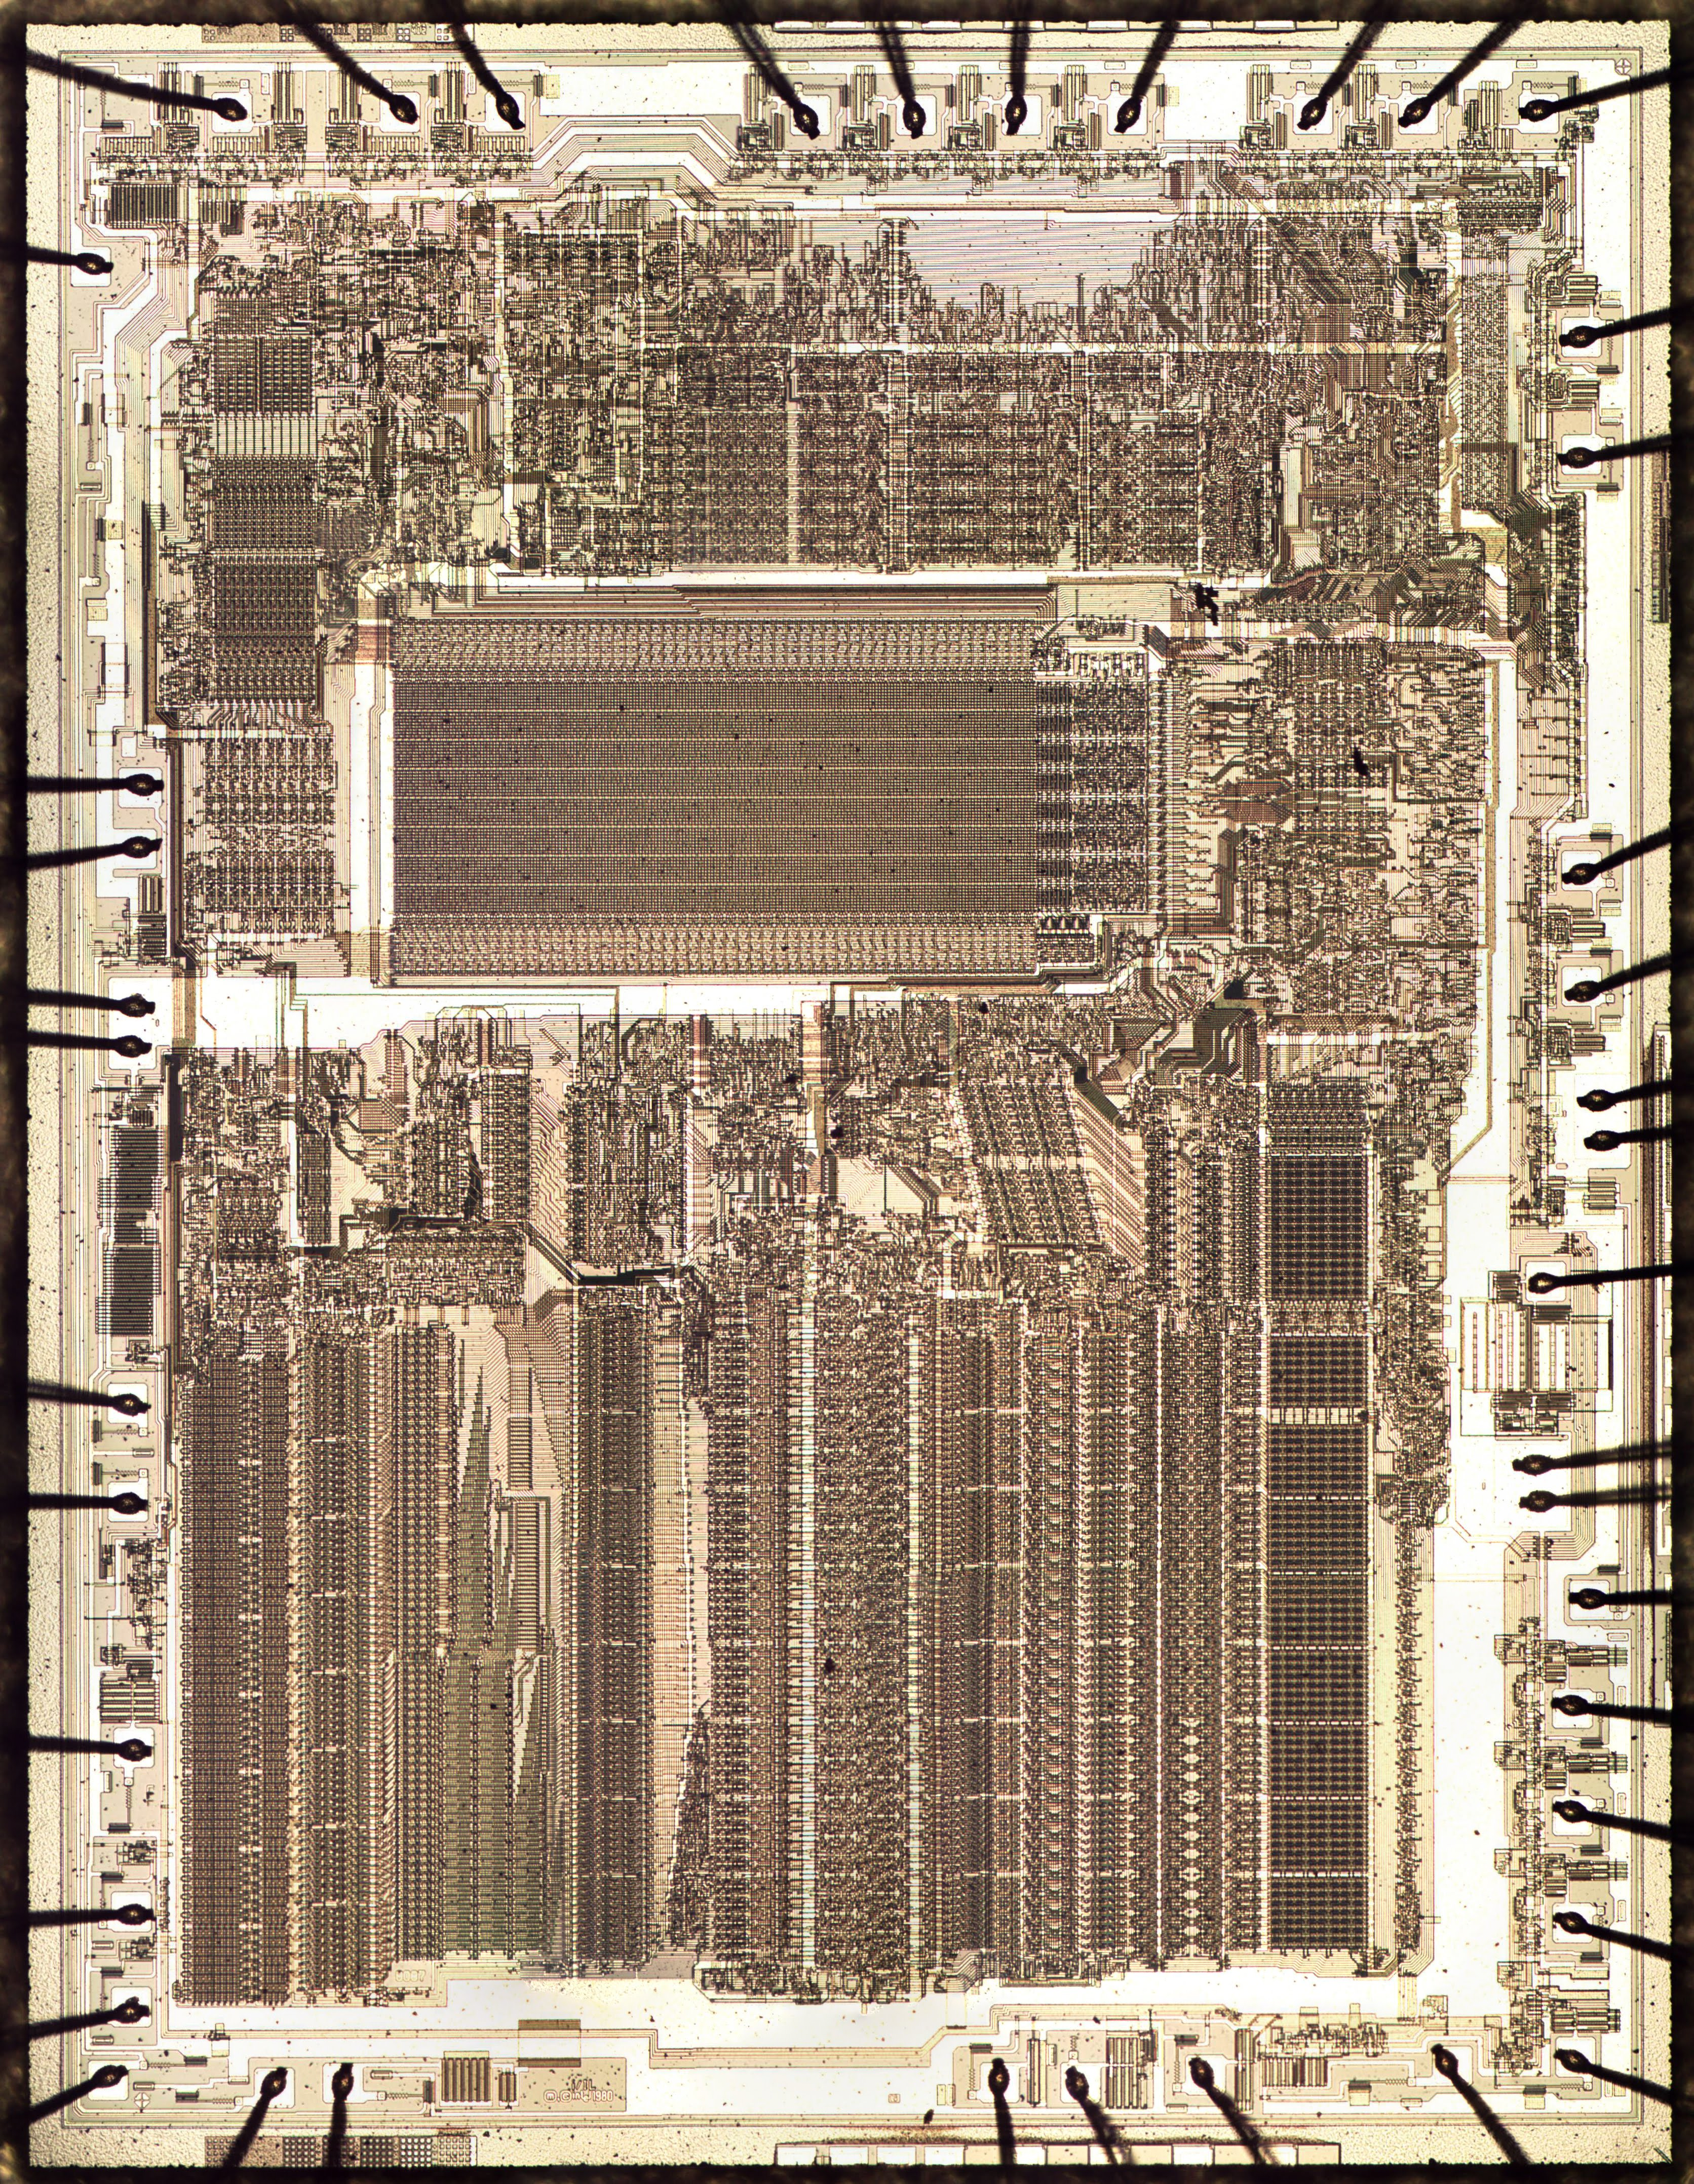 Two bits per transistor: high-density ROM in Intel's 8087 floating point chip